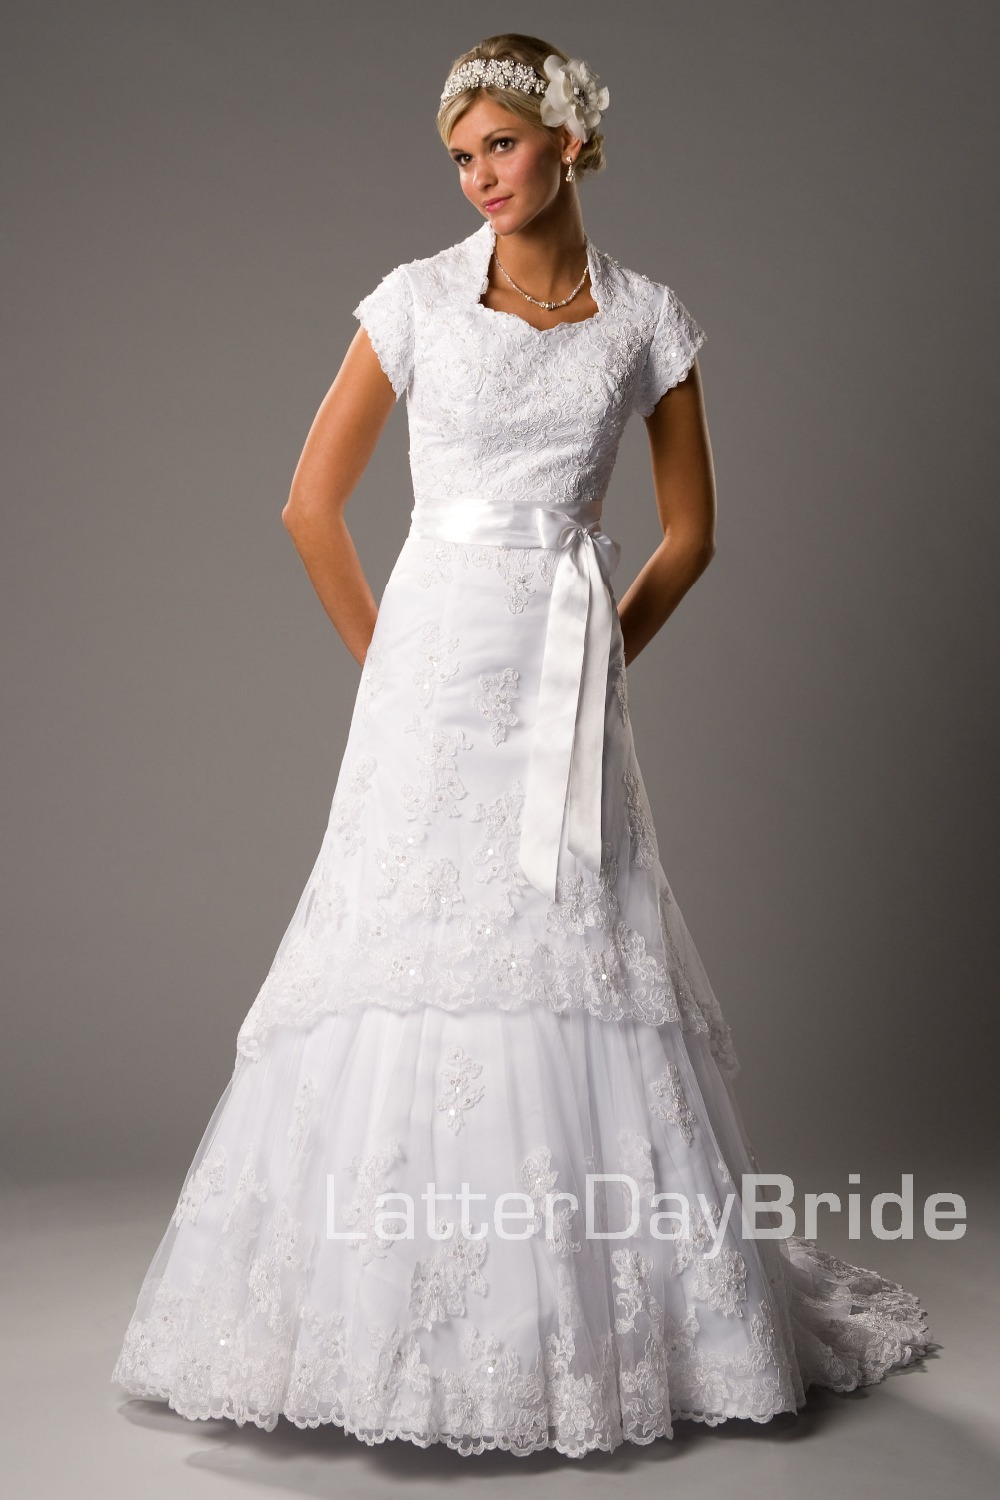 White dress for church - 2016 New Inexpensive Modest White A Line Long With Train Cap Sleeves Lace Women Church Wedding Dress With Sleeves Bridal Gowns